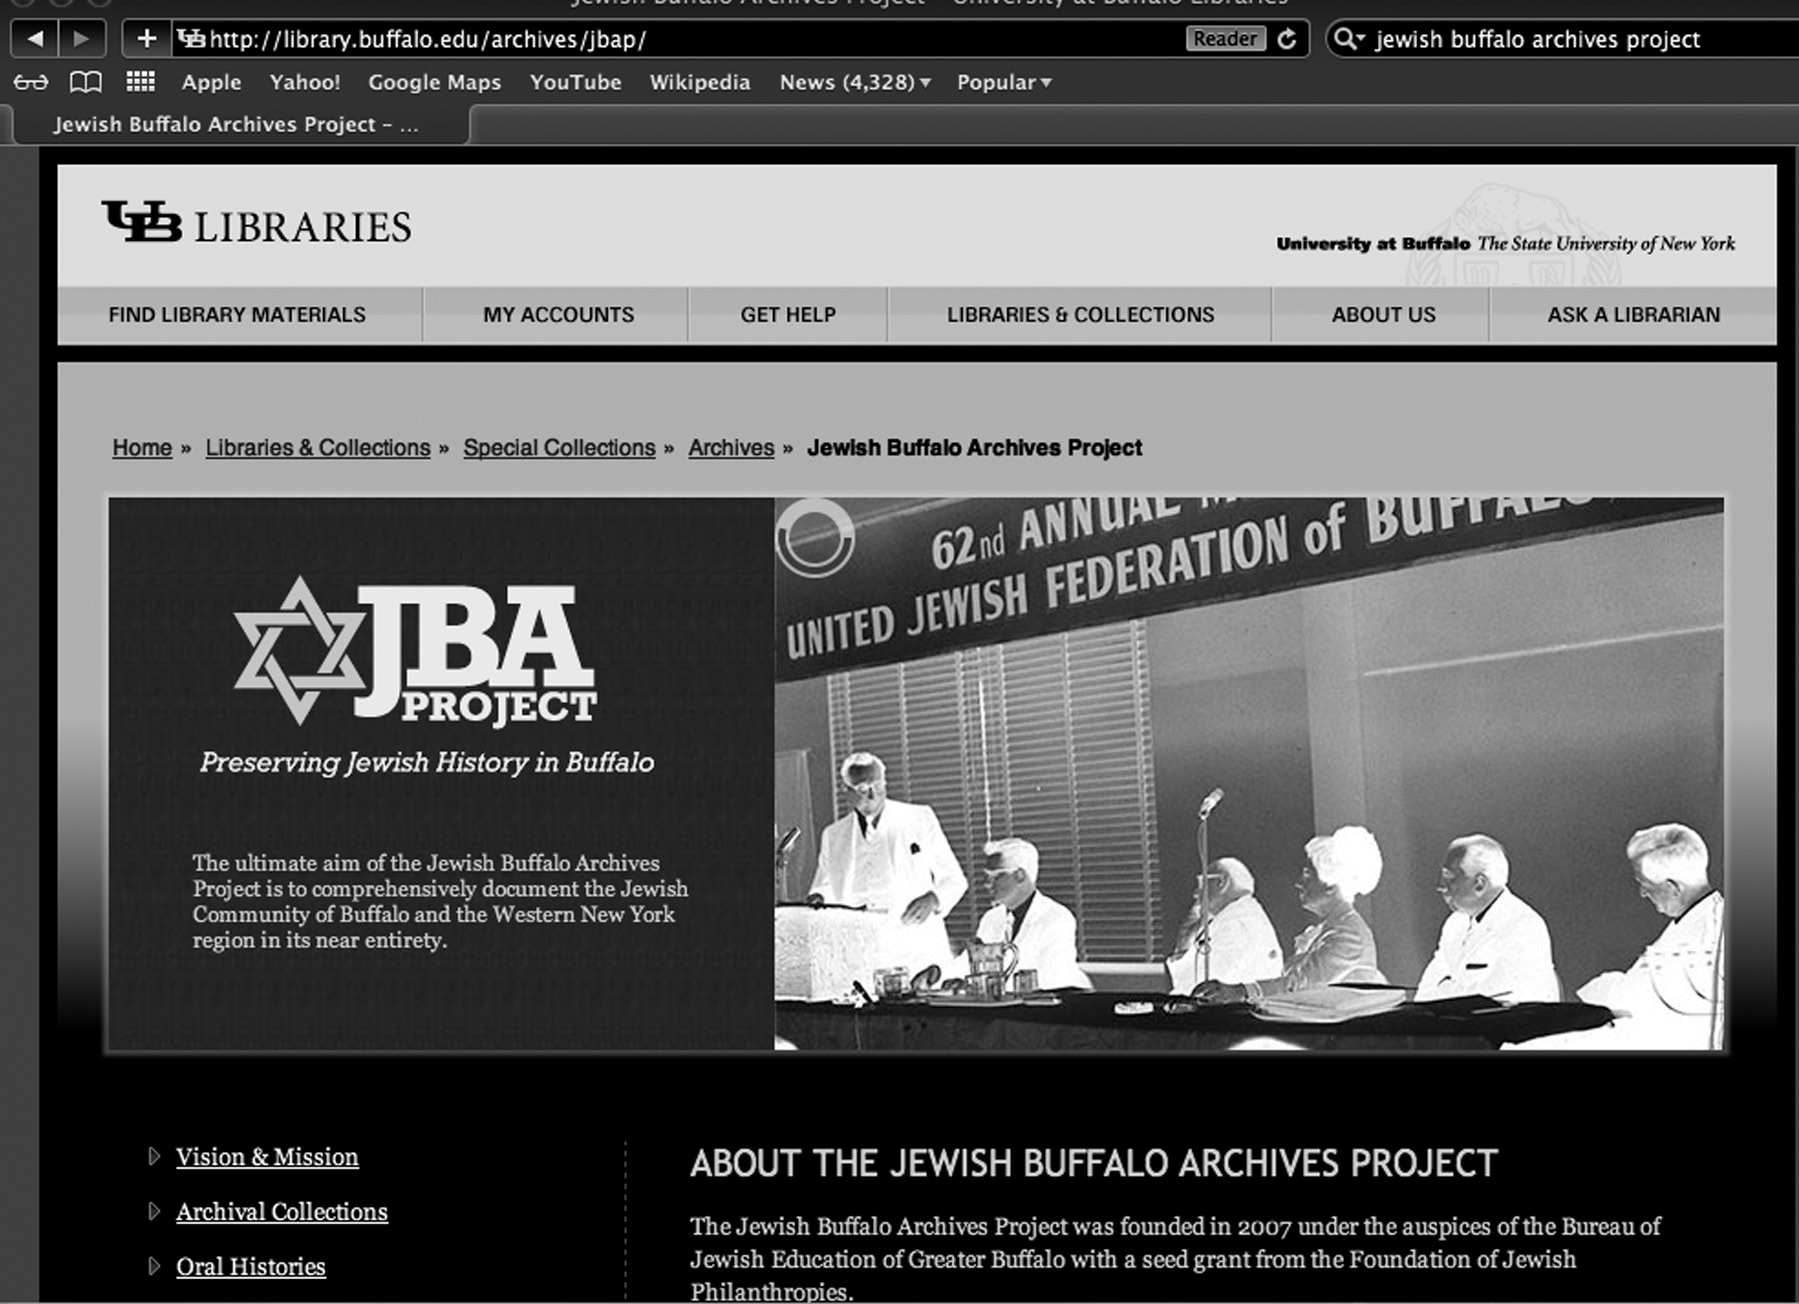 W h i c h H a t A r e Y o u W e a r i n g : Y o u N e e d W h a t? W h e n? Figure 2. Jewish Buffalo Archives Project Website.